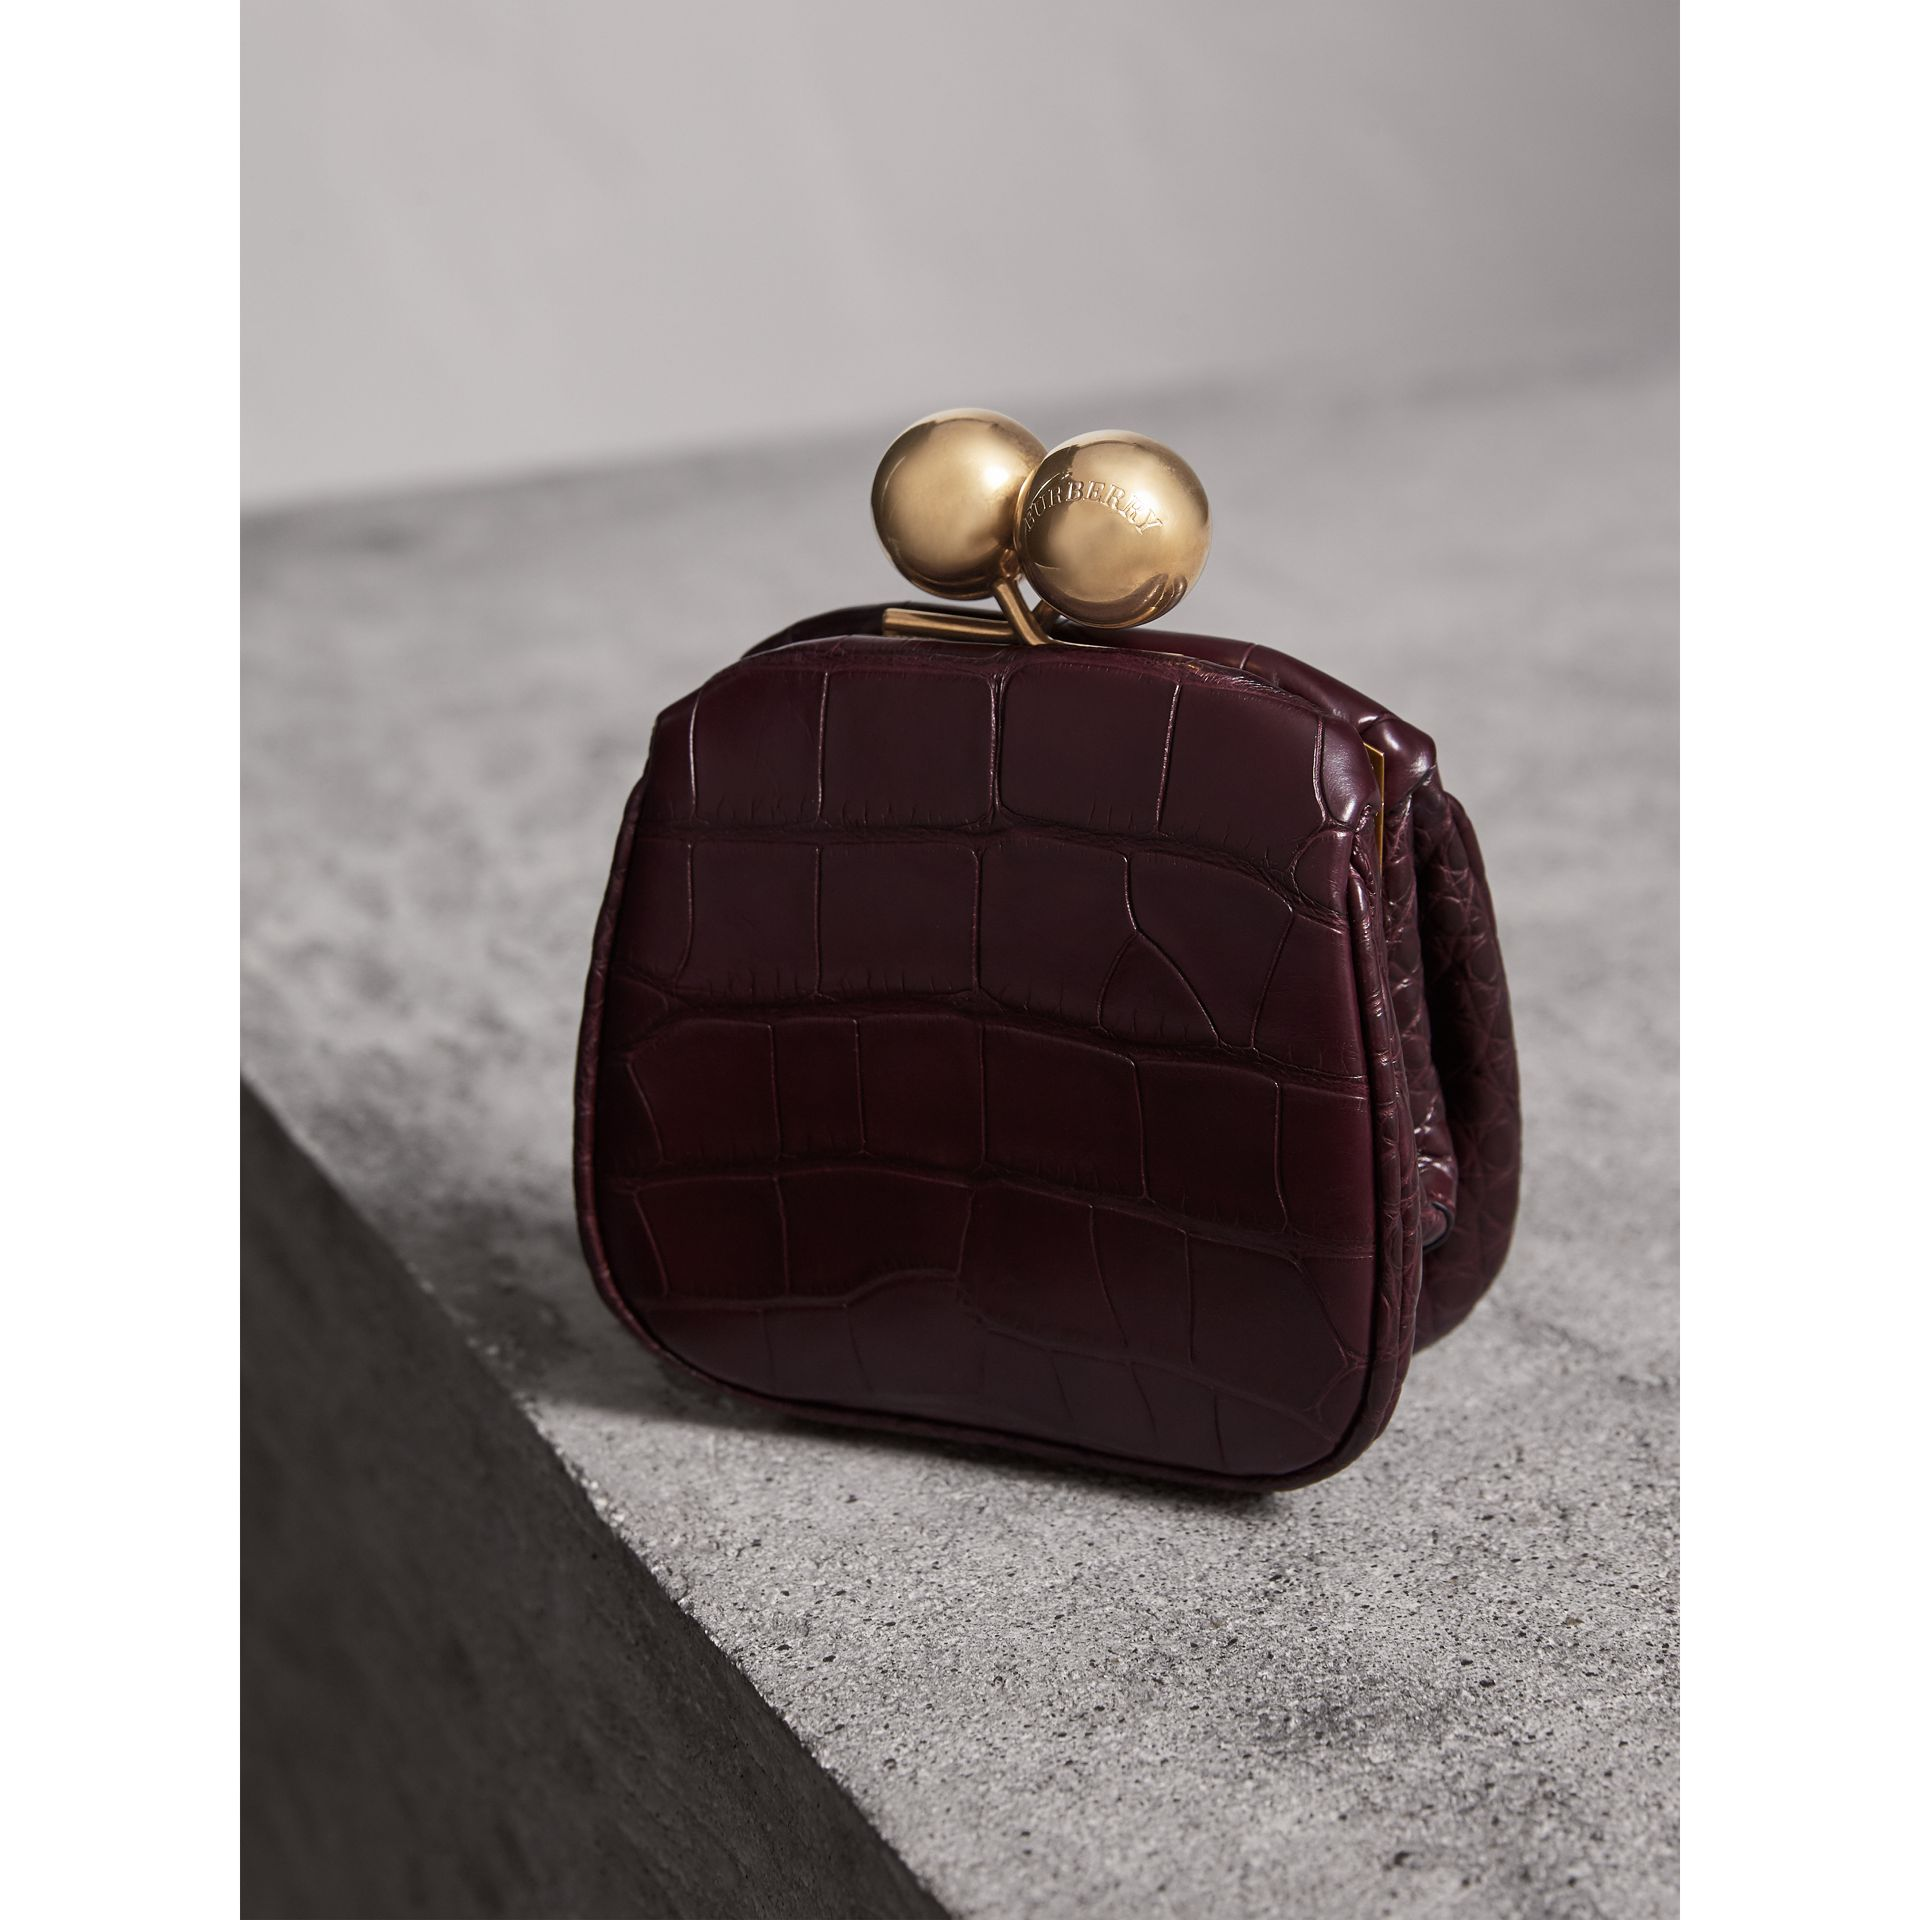 Mini Alligator Metal Frame Clutch Bag in Dark Claret - Women | Burberry United Kingdom - gallery image 2